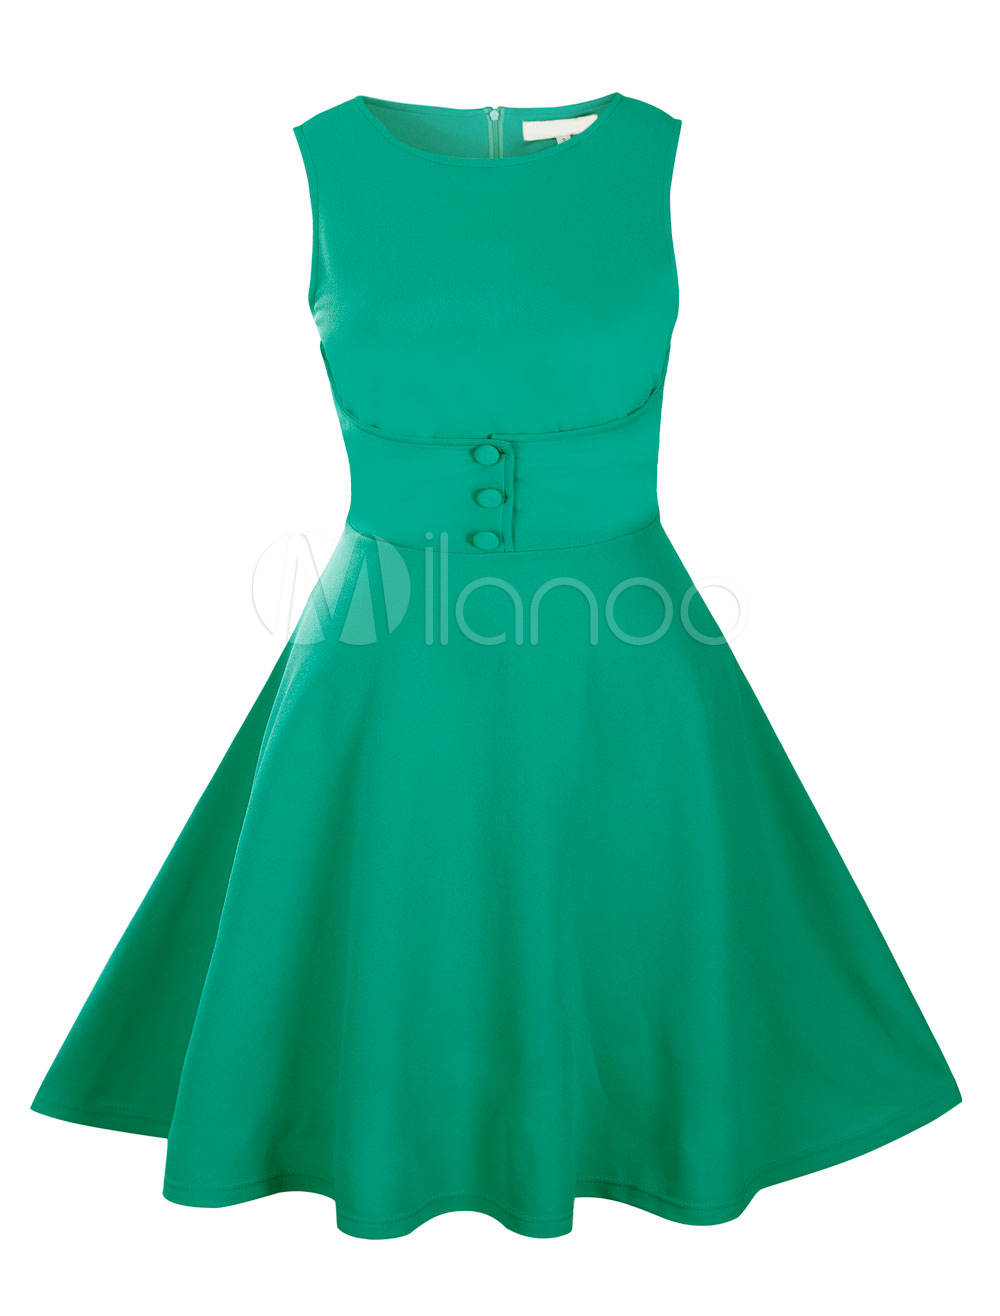 Green Vintage Dress Women's Sleeveless Buttons Deco Flare Retro Dress